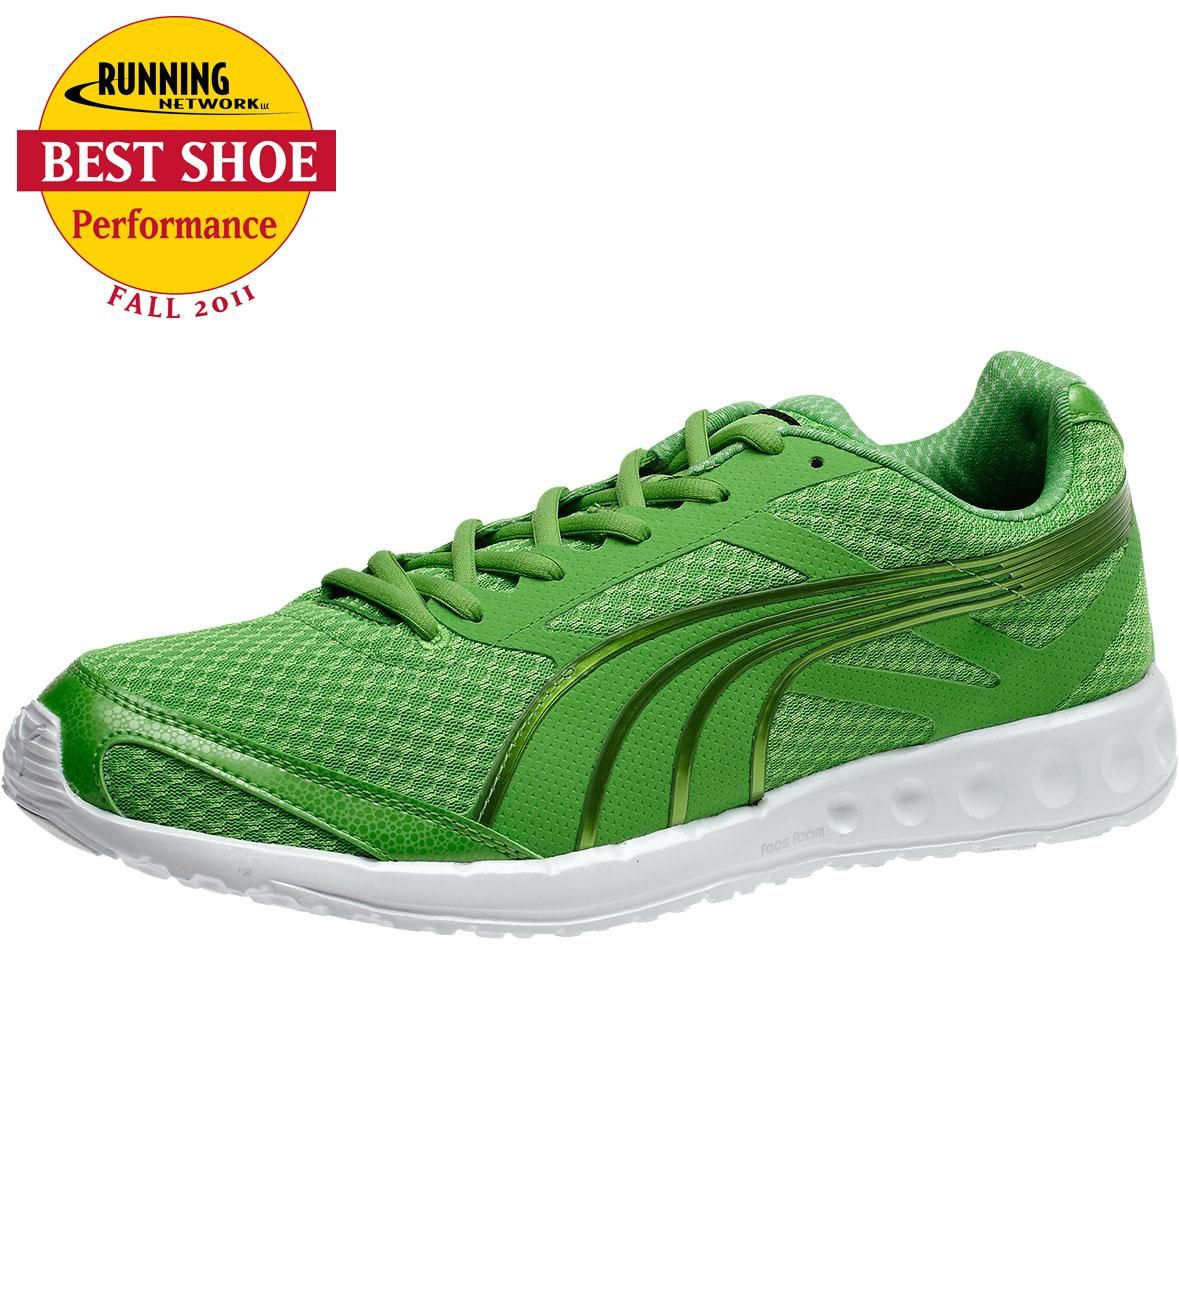 PUMA Faas 400 Bolt Running Shoes. Price $85.00.